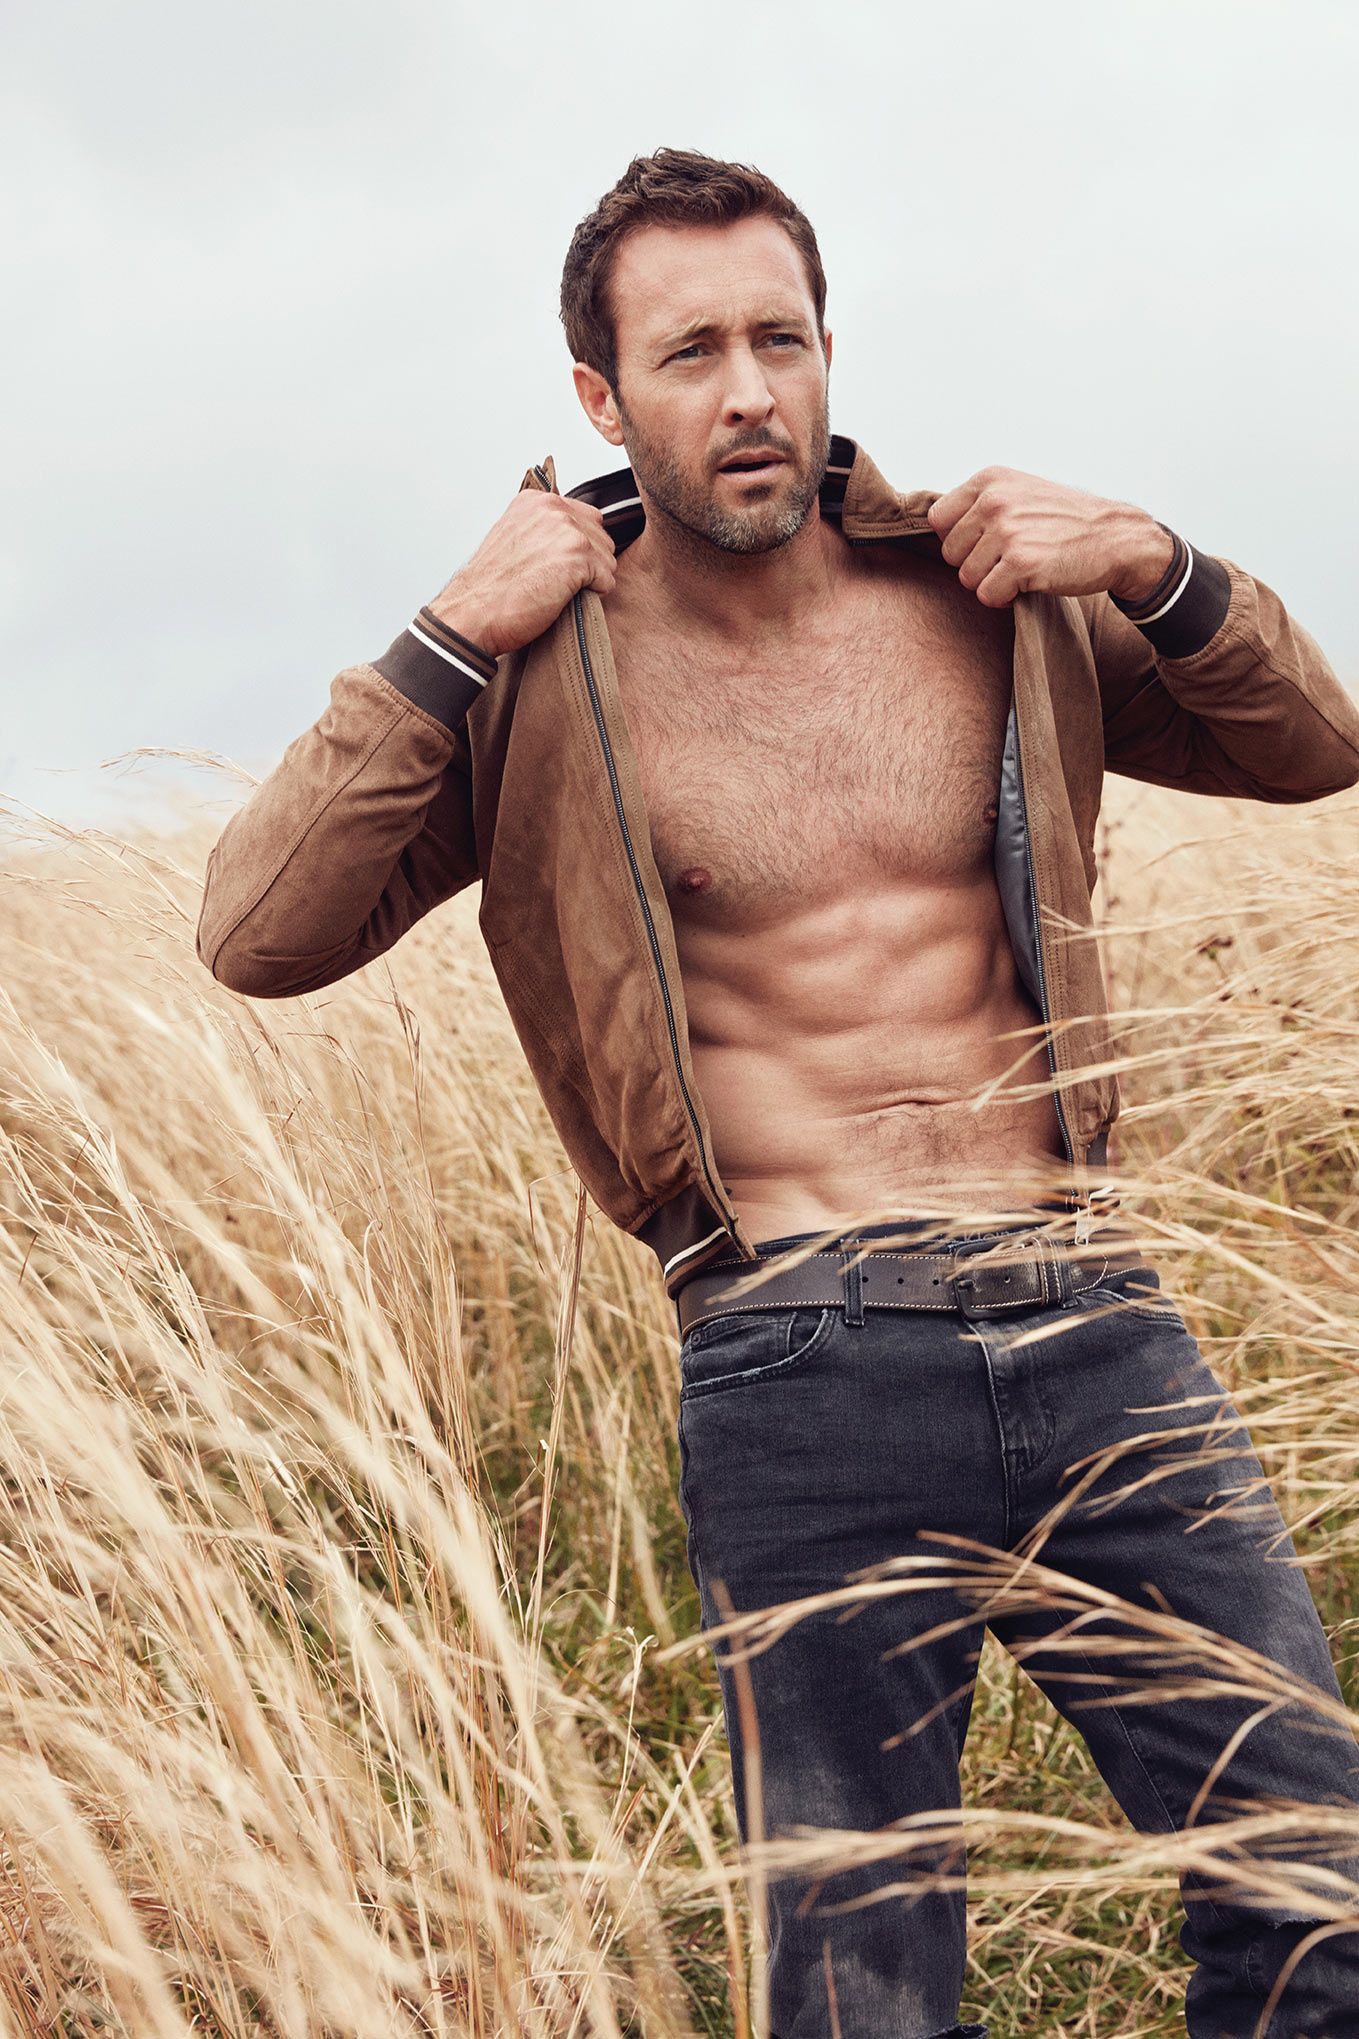 Alex O loughlin shirtless with a leather jacket.